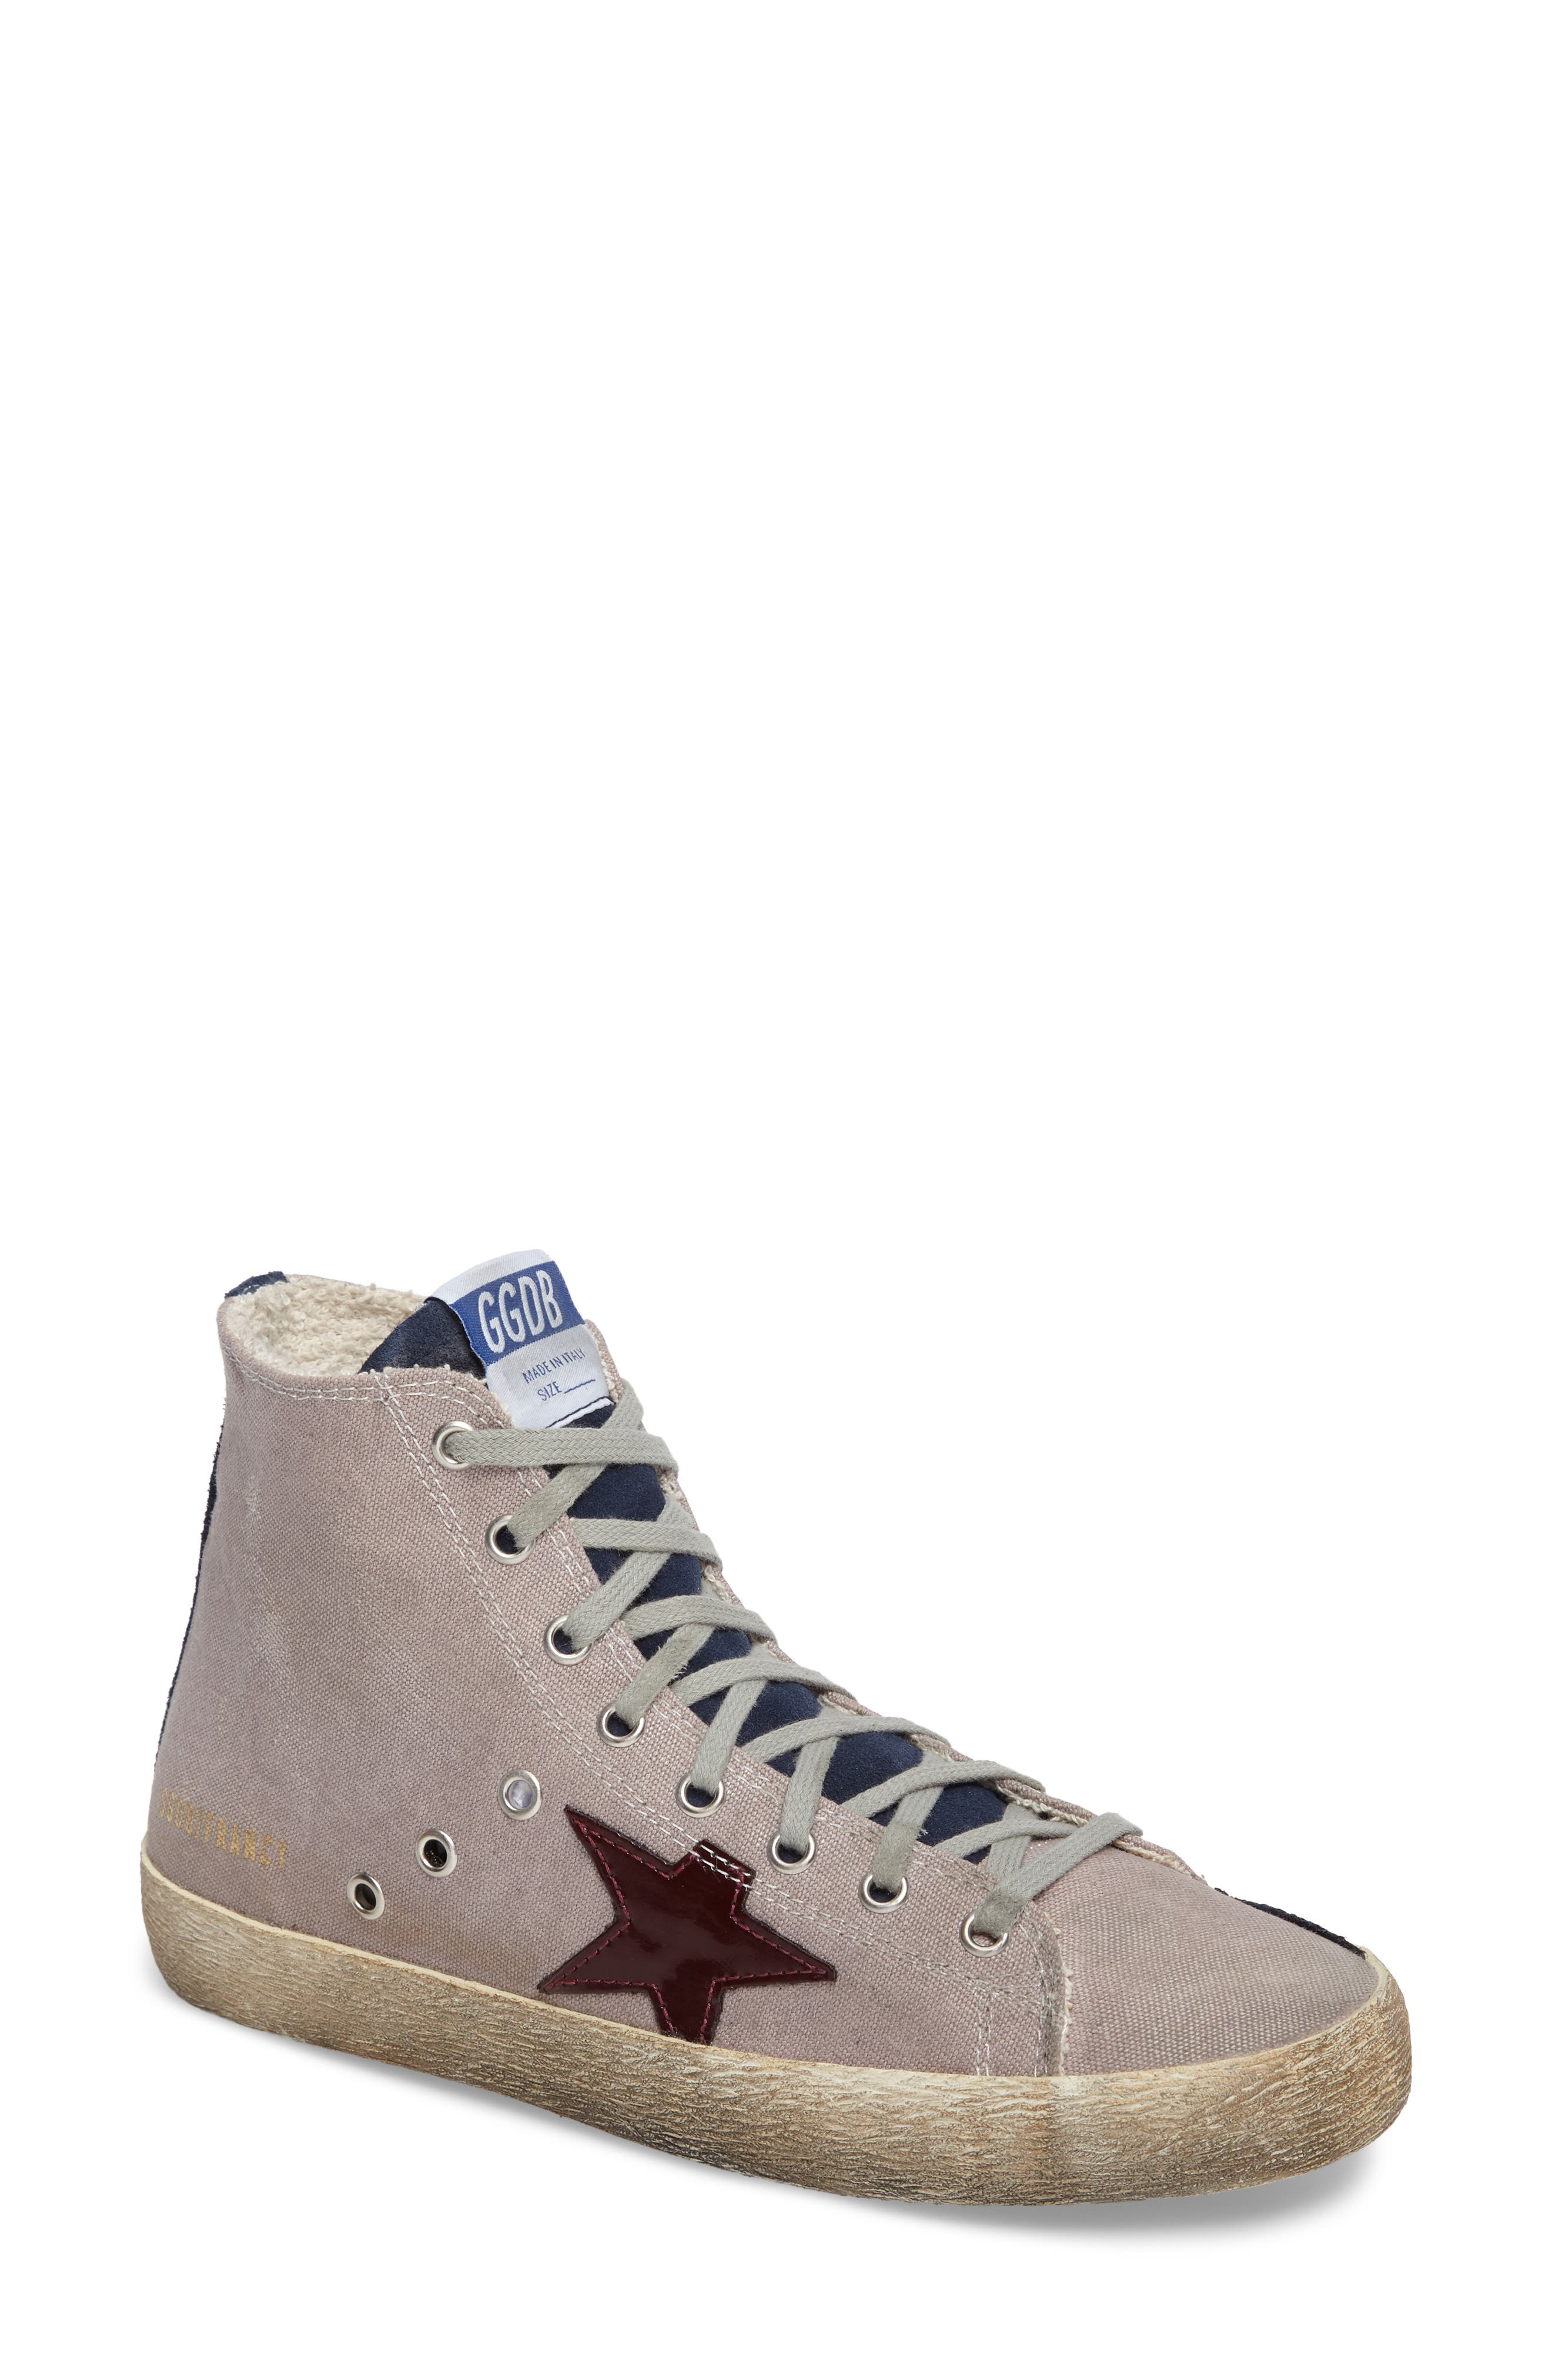 Alternate Image 1 Selected - Golden Goose Francy Mid Top Sneaker (Women)